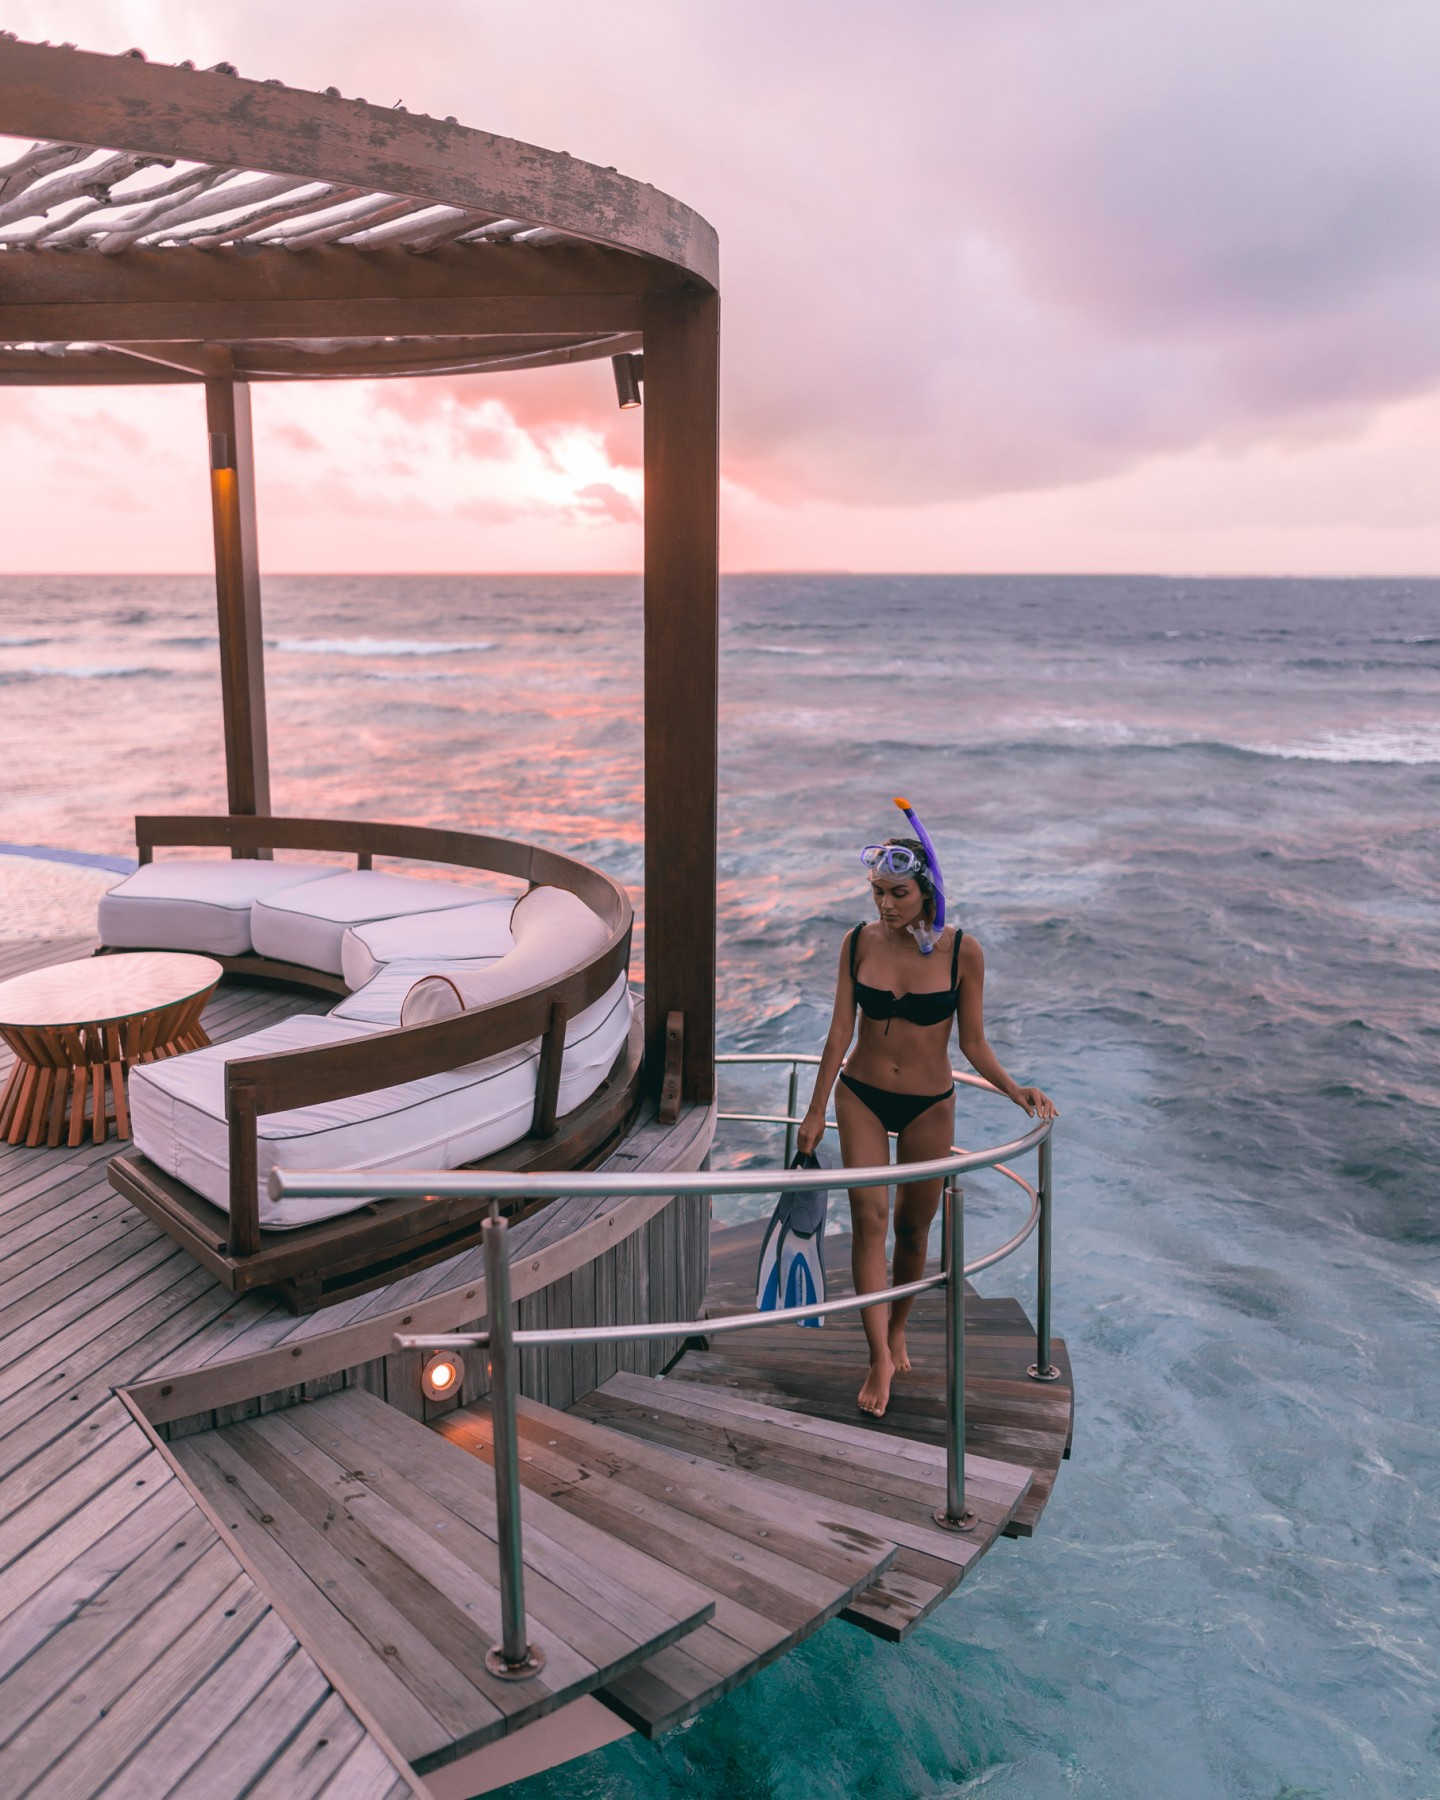 W Maldives: Couples Retreat with the Best House Reef in the Maldives